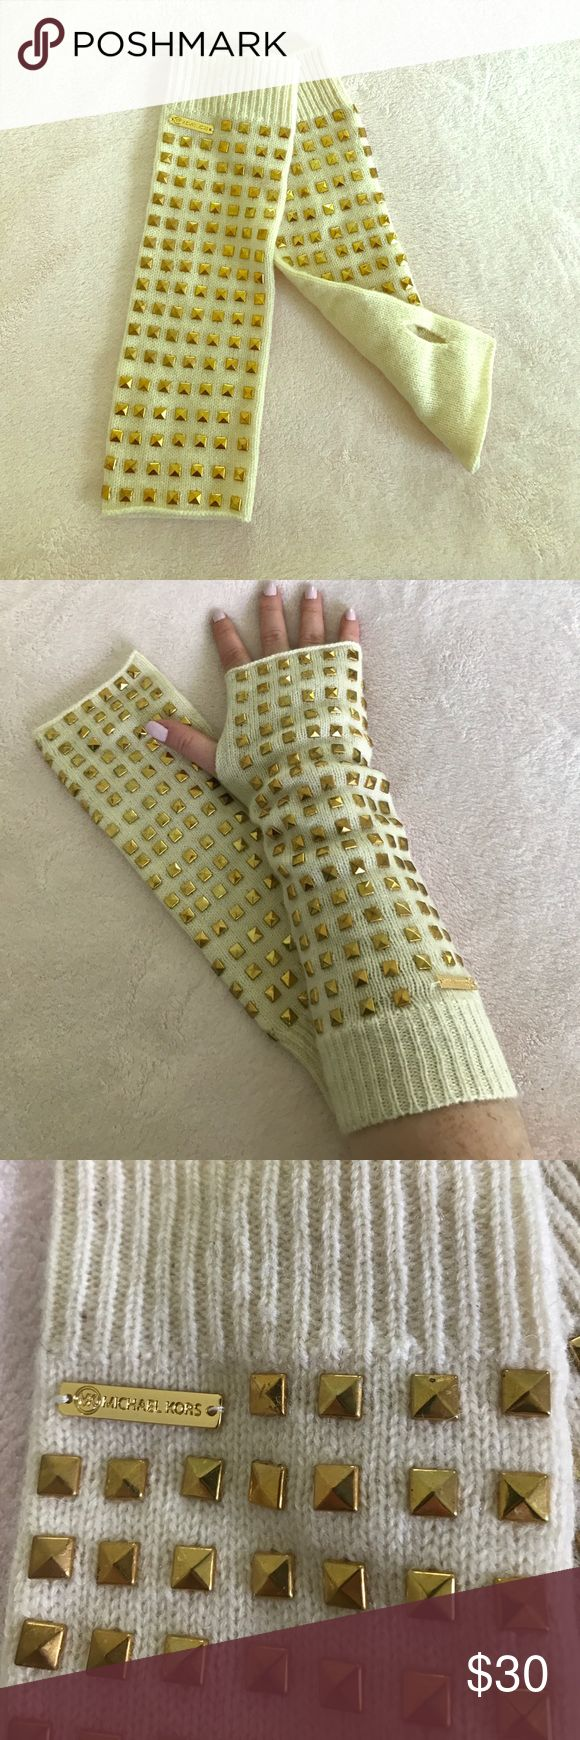 Michael Kors cream arm warmers with gold studs Michael Kors knit cream arm warmers with gold studs Michael Kors Accessories Gloves & Mittens